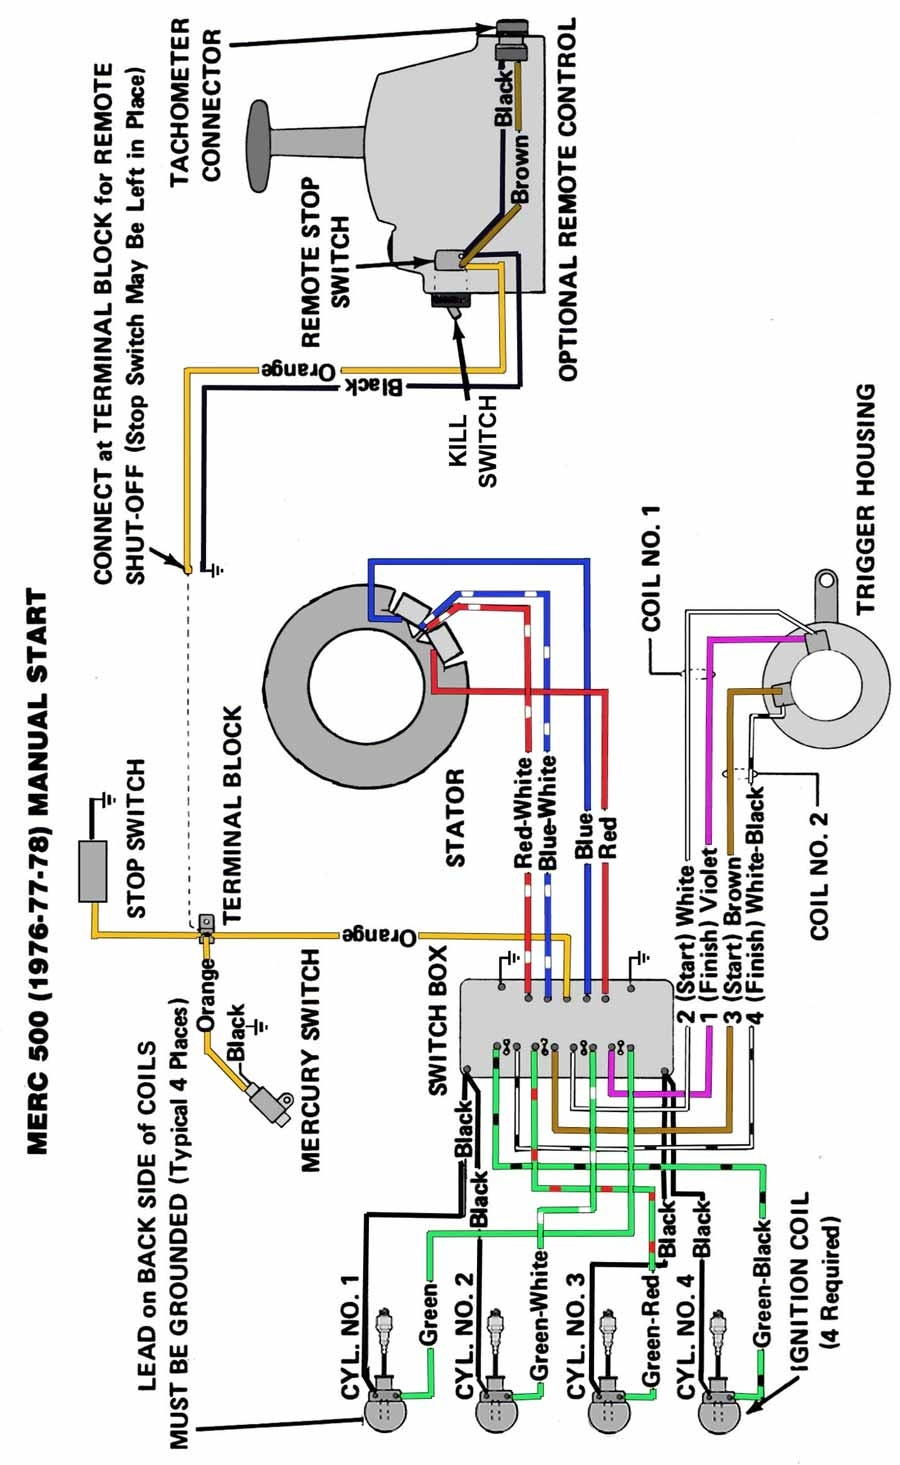 mercury outboard wiring diagrams mastertech marin intended for 76 evinrude wiring diagram?resize\\\\\\\\\\\\\\\=665%2C1082\\\\\\\\\\\\\\\&ssl\\\\\\\\\\\\\\\=1 mercury outboard ignition switch diagram color coded wiring Boat Ignition Switch Wiring Diagram at bayanpartner.co